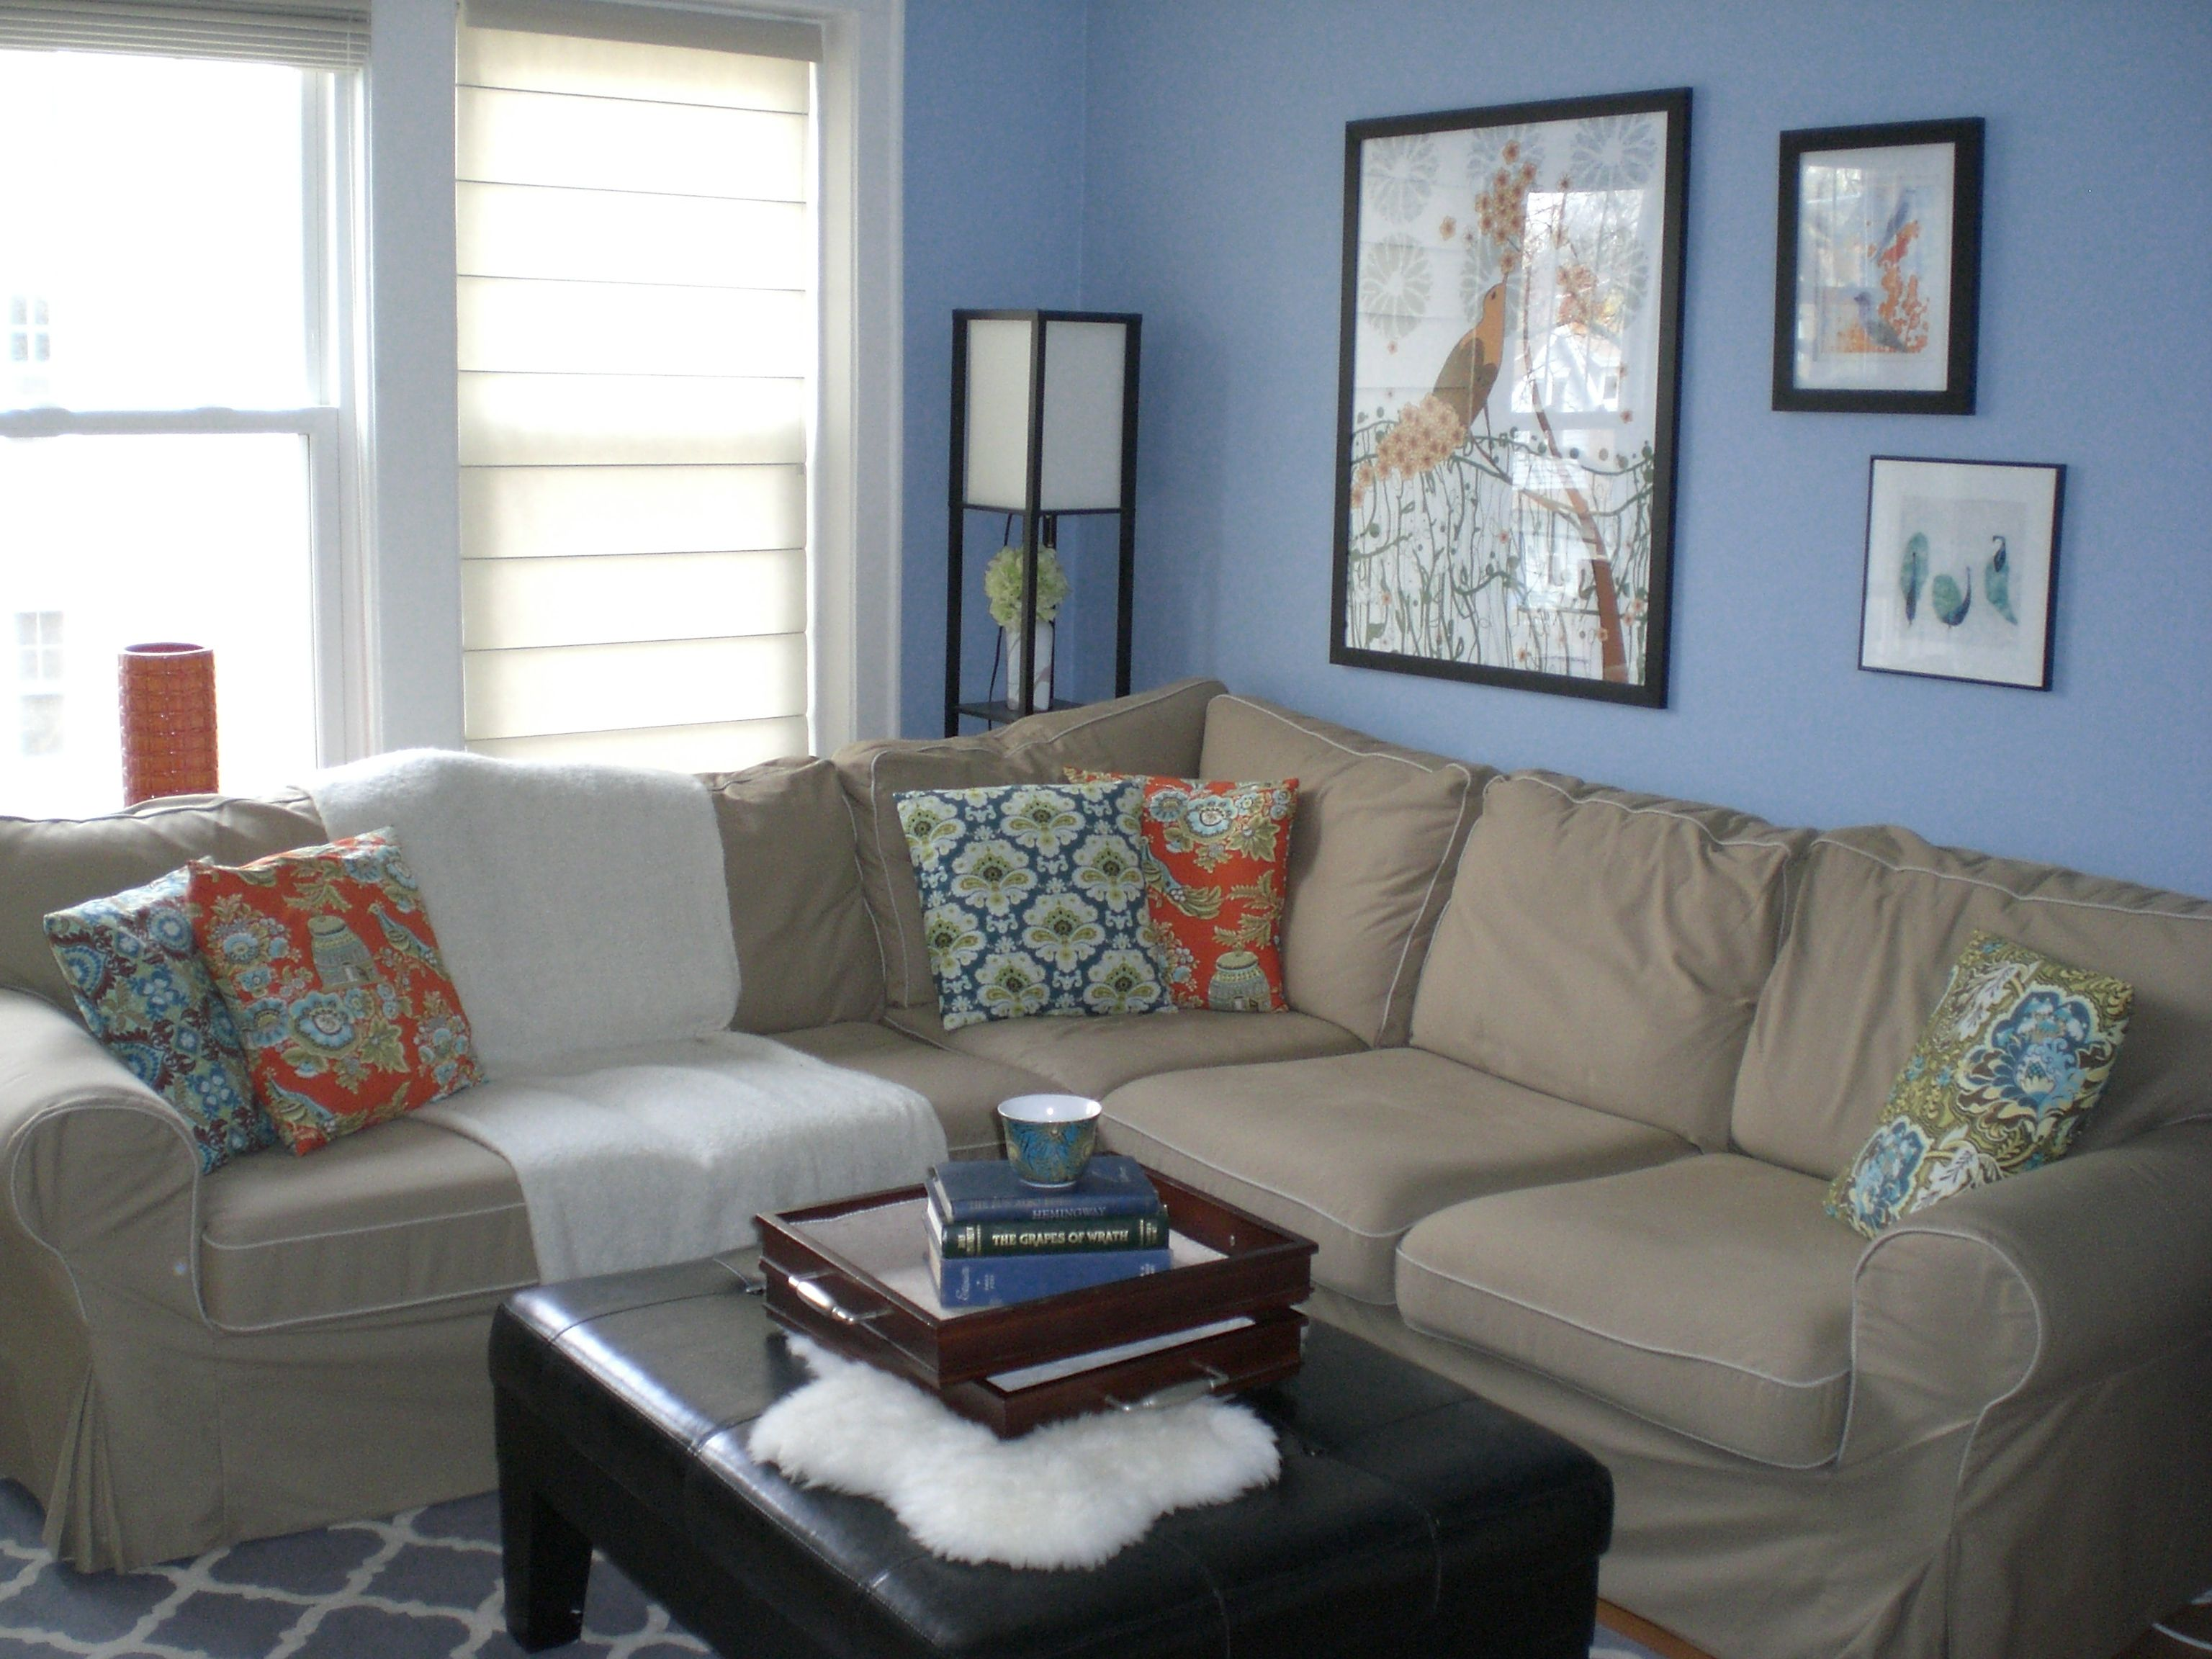 Paint Designs For Living Room: Light Blue Paint Colors For Living Room Xrkotdh